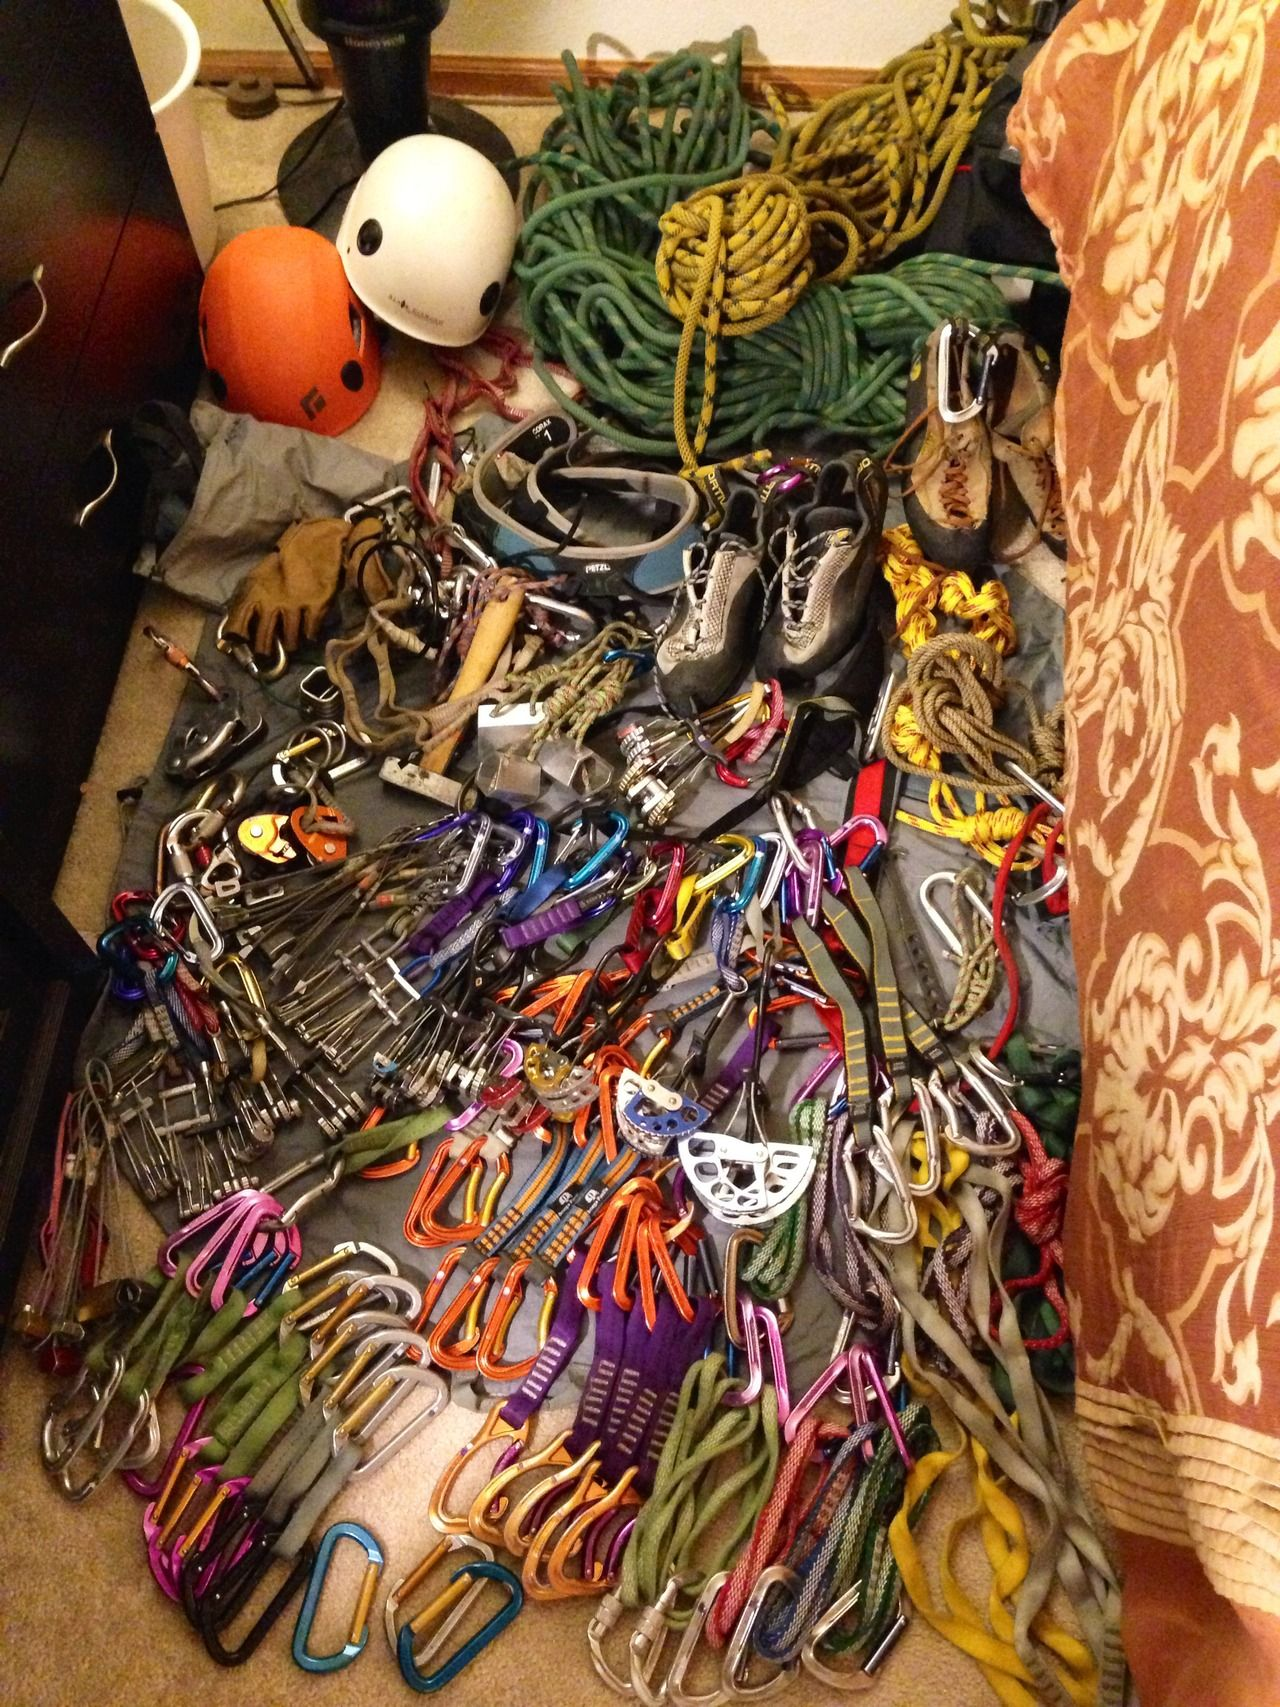 teece303:  Ok, that's everything. Not enough room to spread it out.  I still need to get offwidth gear (#4 Camalot is the biggest I go). And...